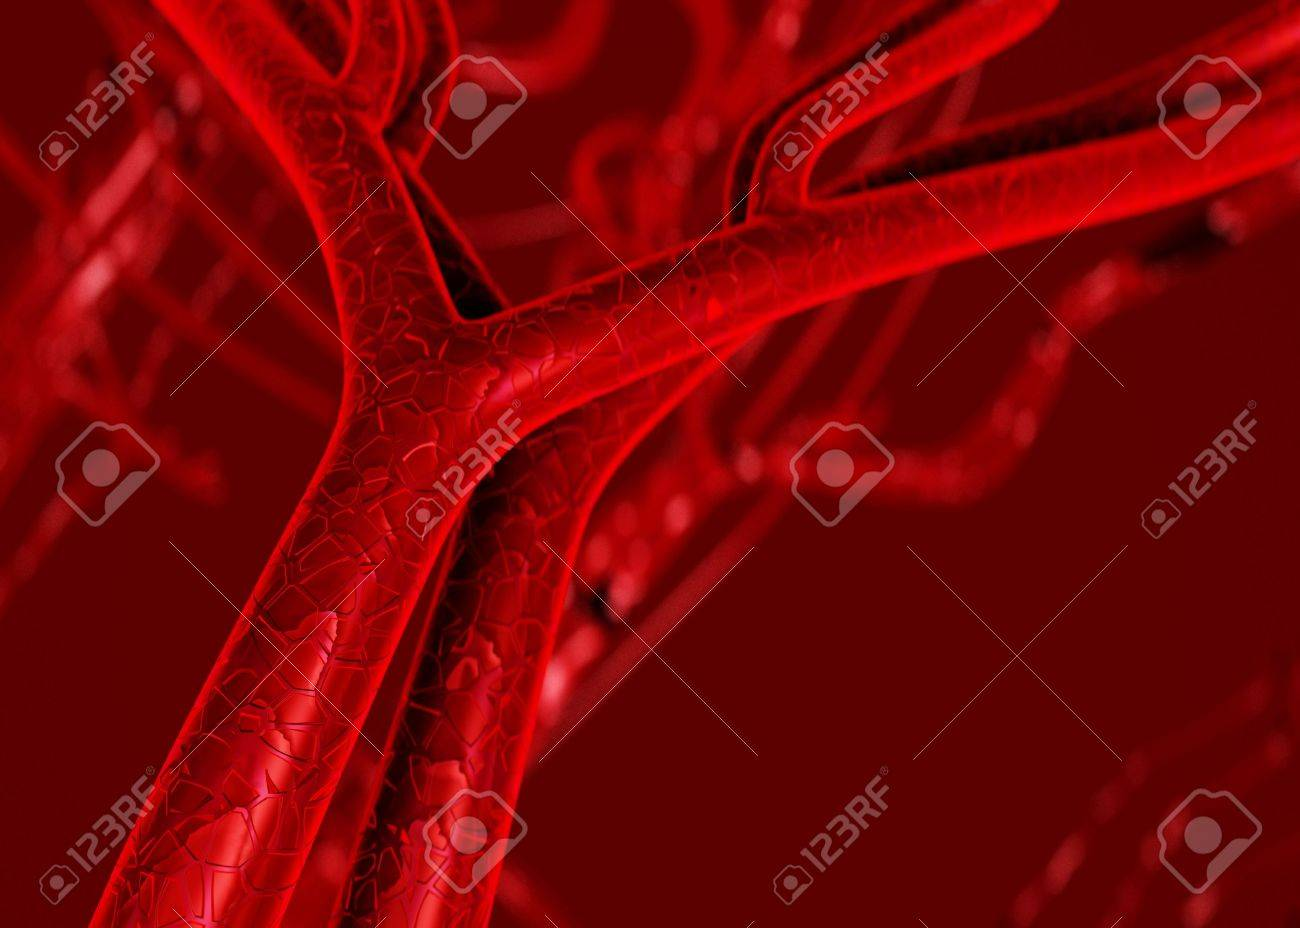 Blood arteries and veins Stock Photo - 823796